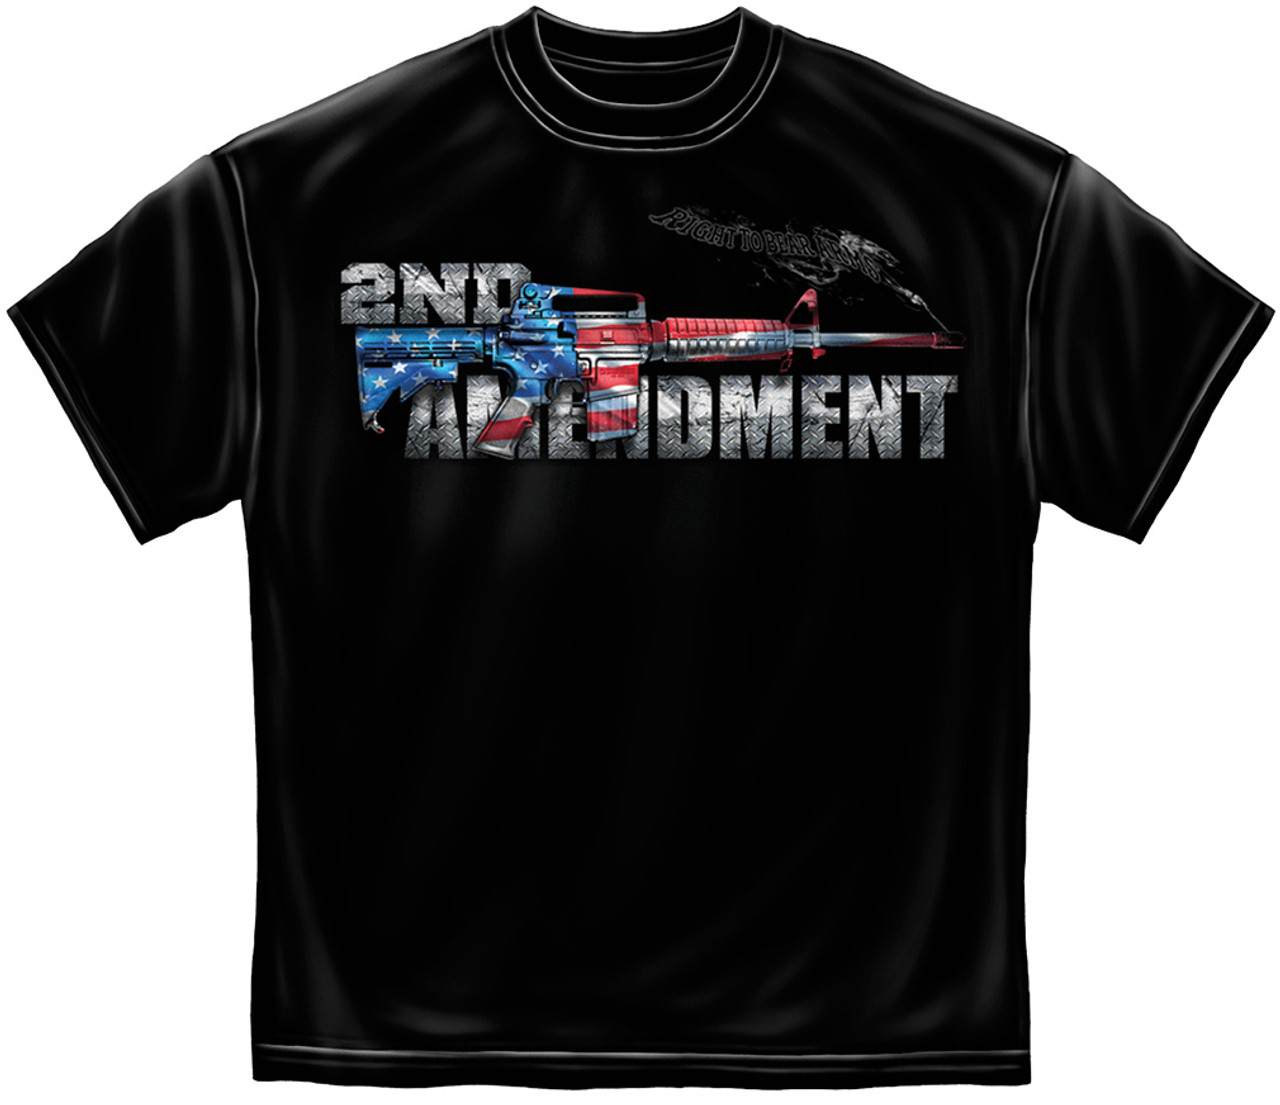 **(NEW-N.R.A.OFFICIALLY-LICENSED,2ND-AMENDMENT & AR-15-FLAG-COLORS,NICE-GRAPHIC-PRINTED-PREMIUM-DOUBLE-SIDED-TEES:)**